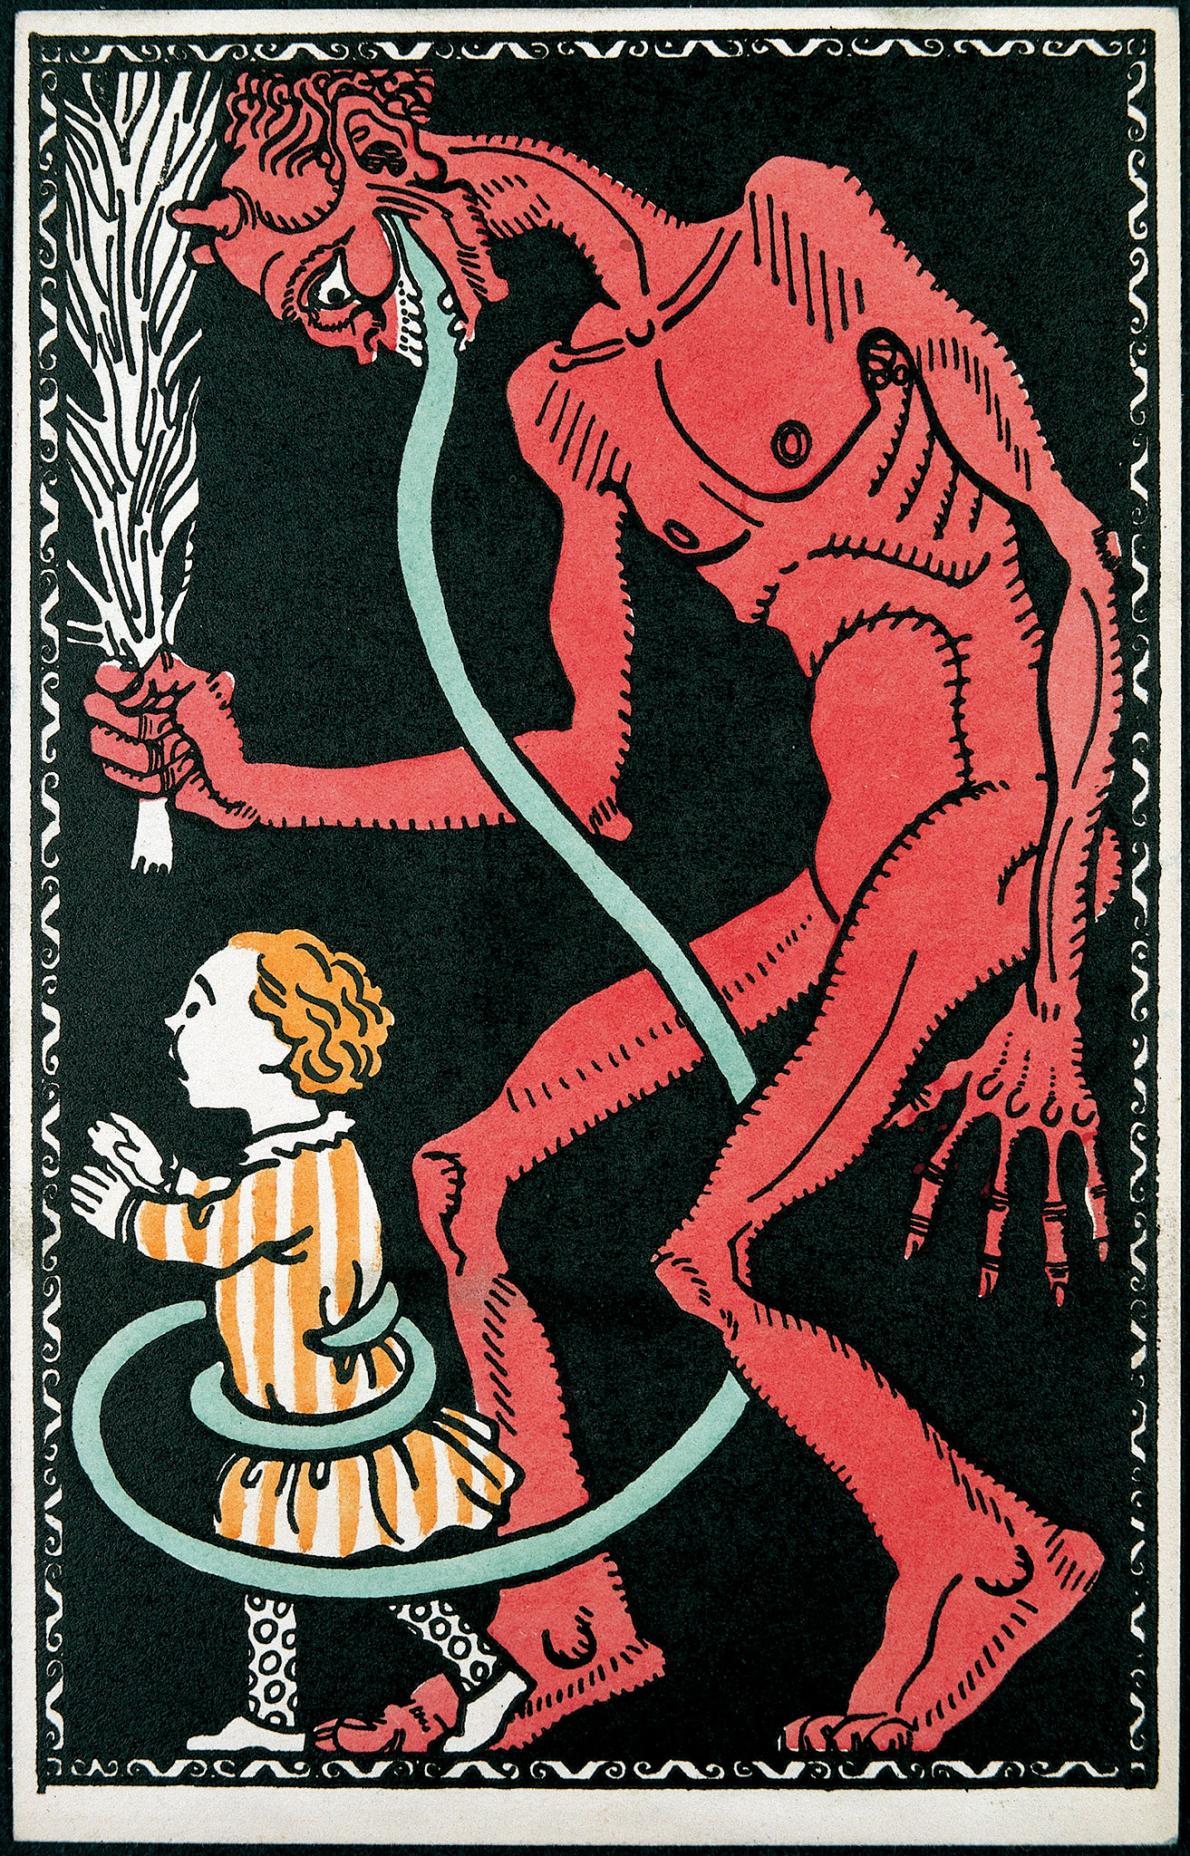 02krampus2015.ngsversion.1463443432723.adapt.1190.1.jpg